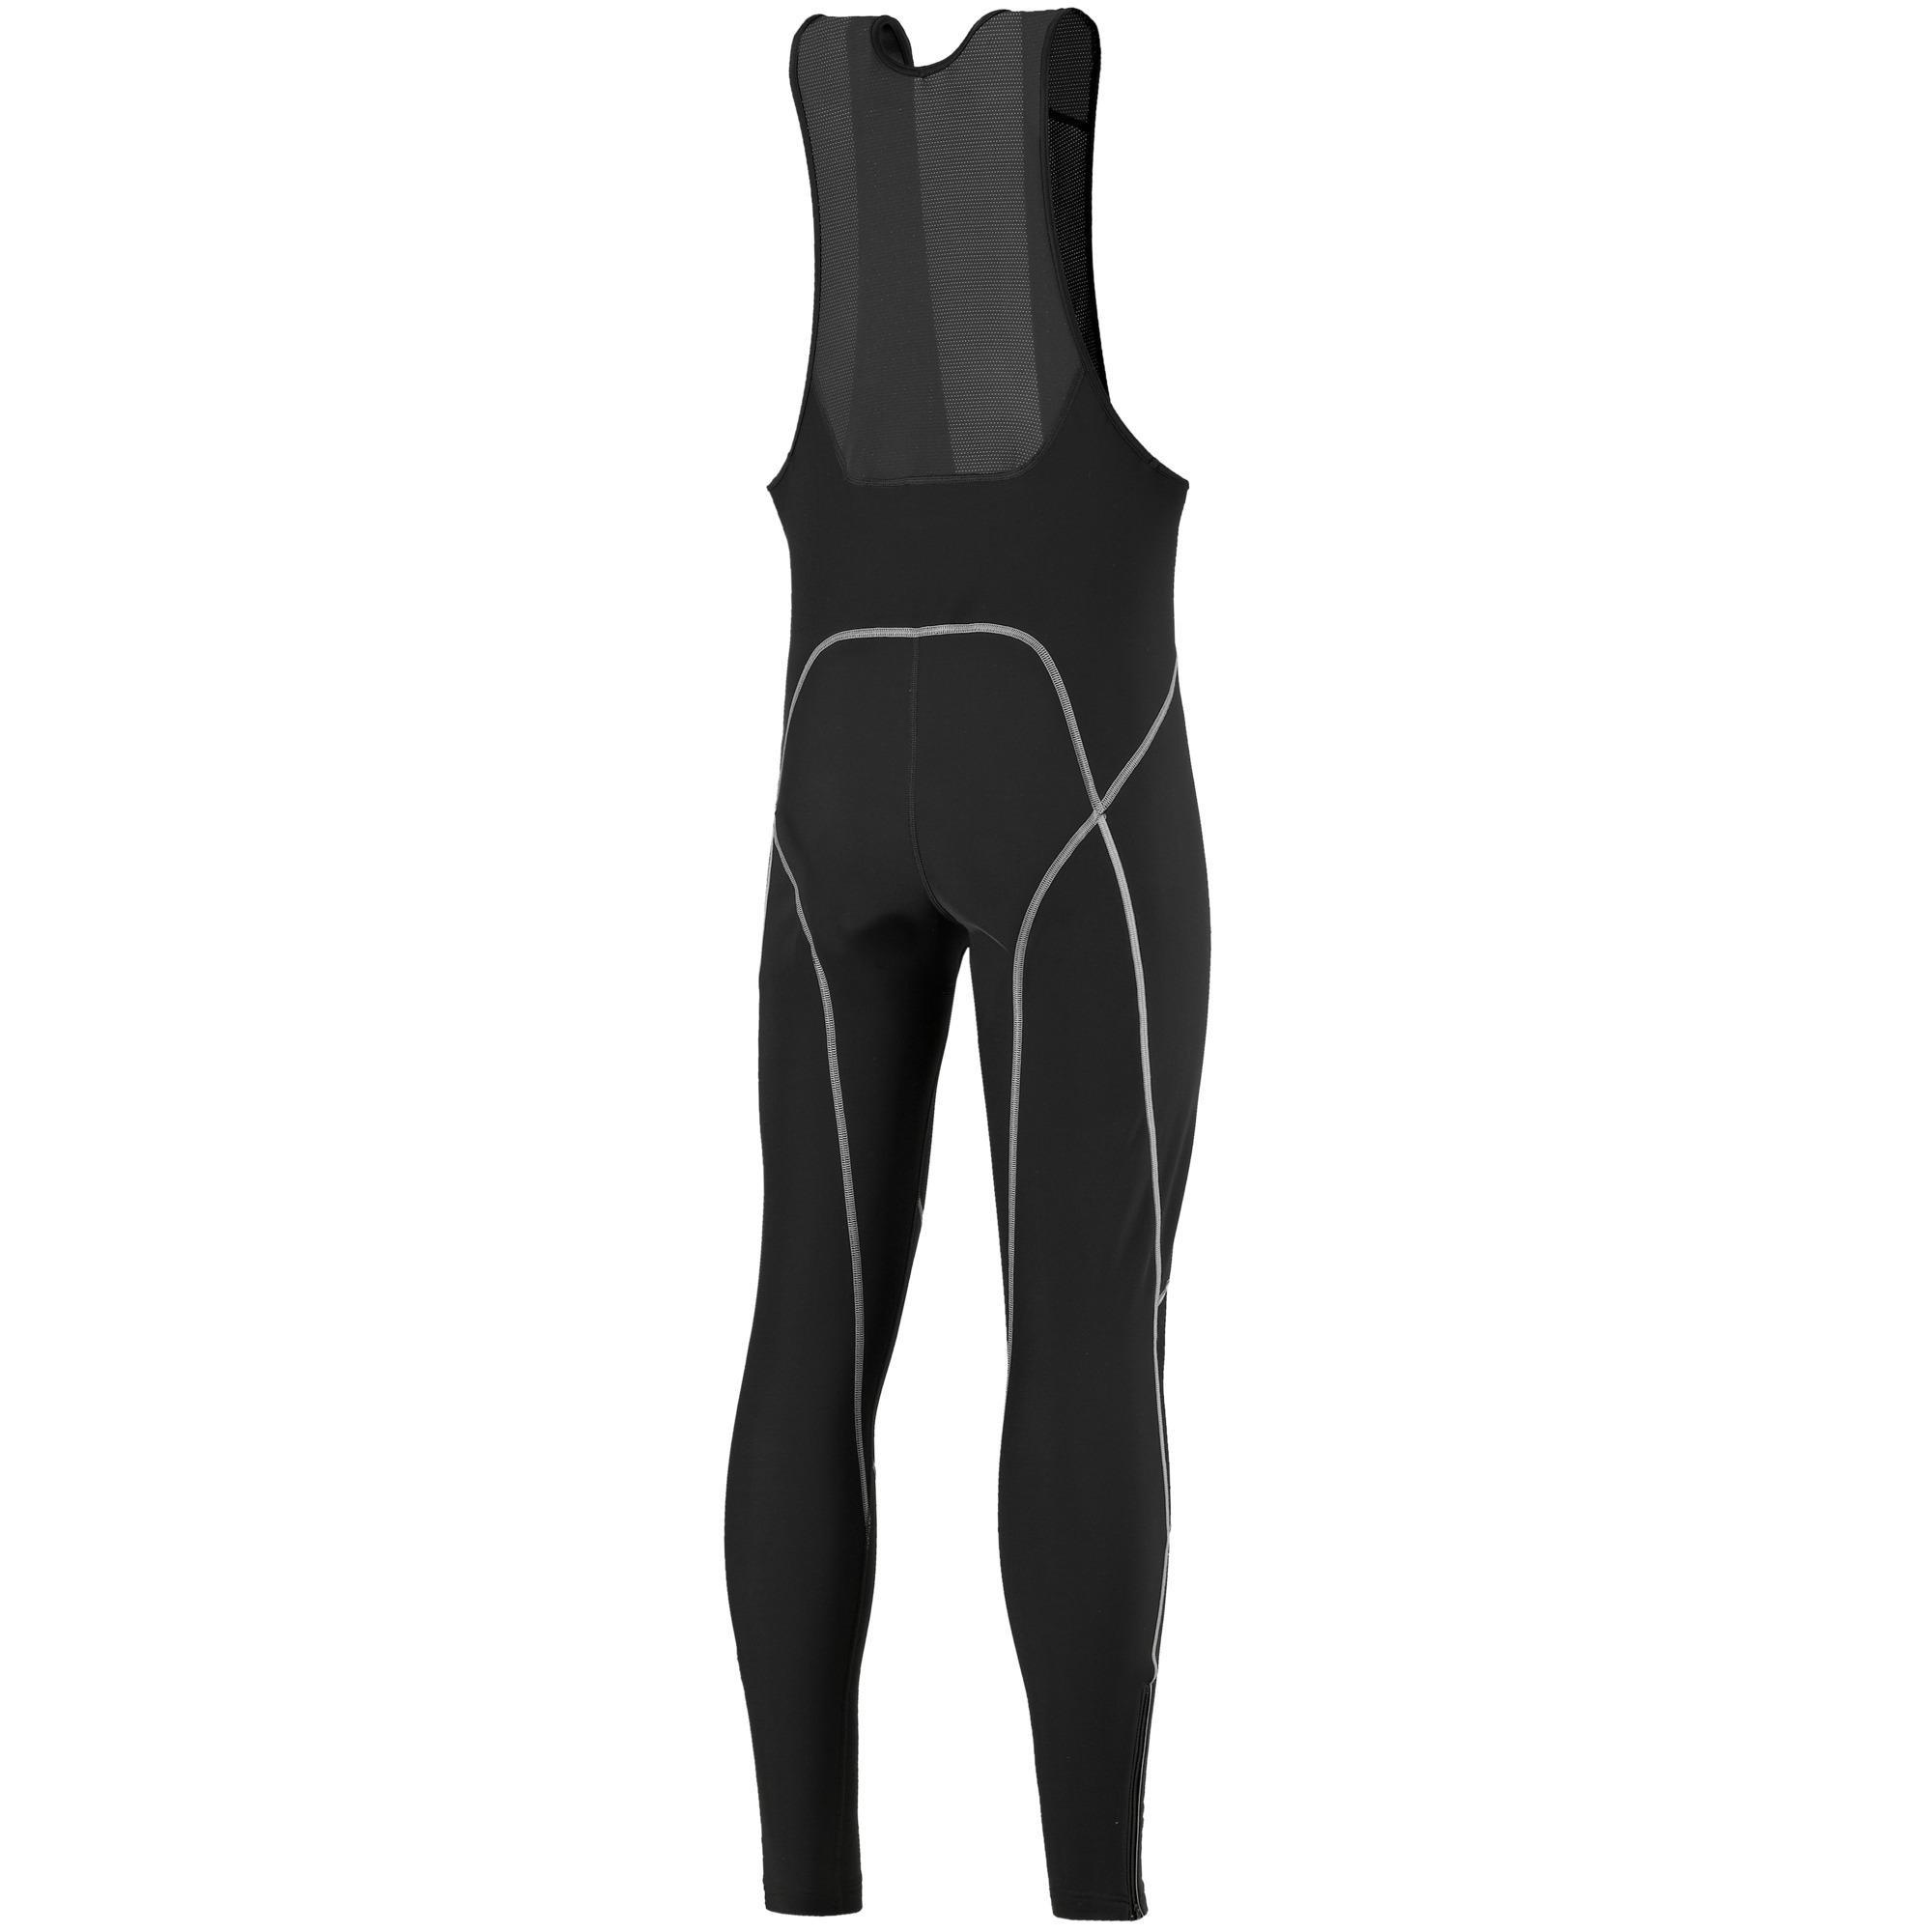 SCOTT Endurance AS WP w/o pad Tights